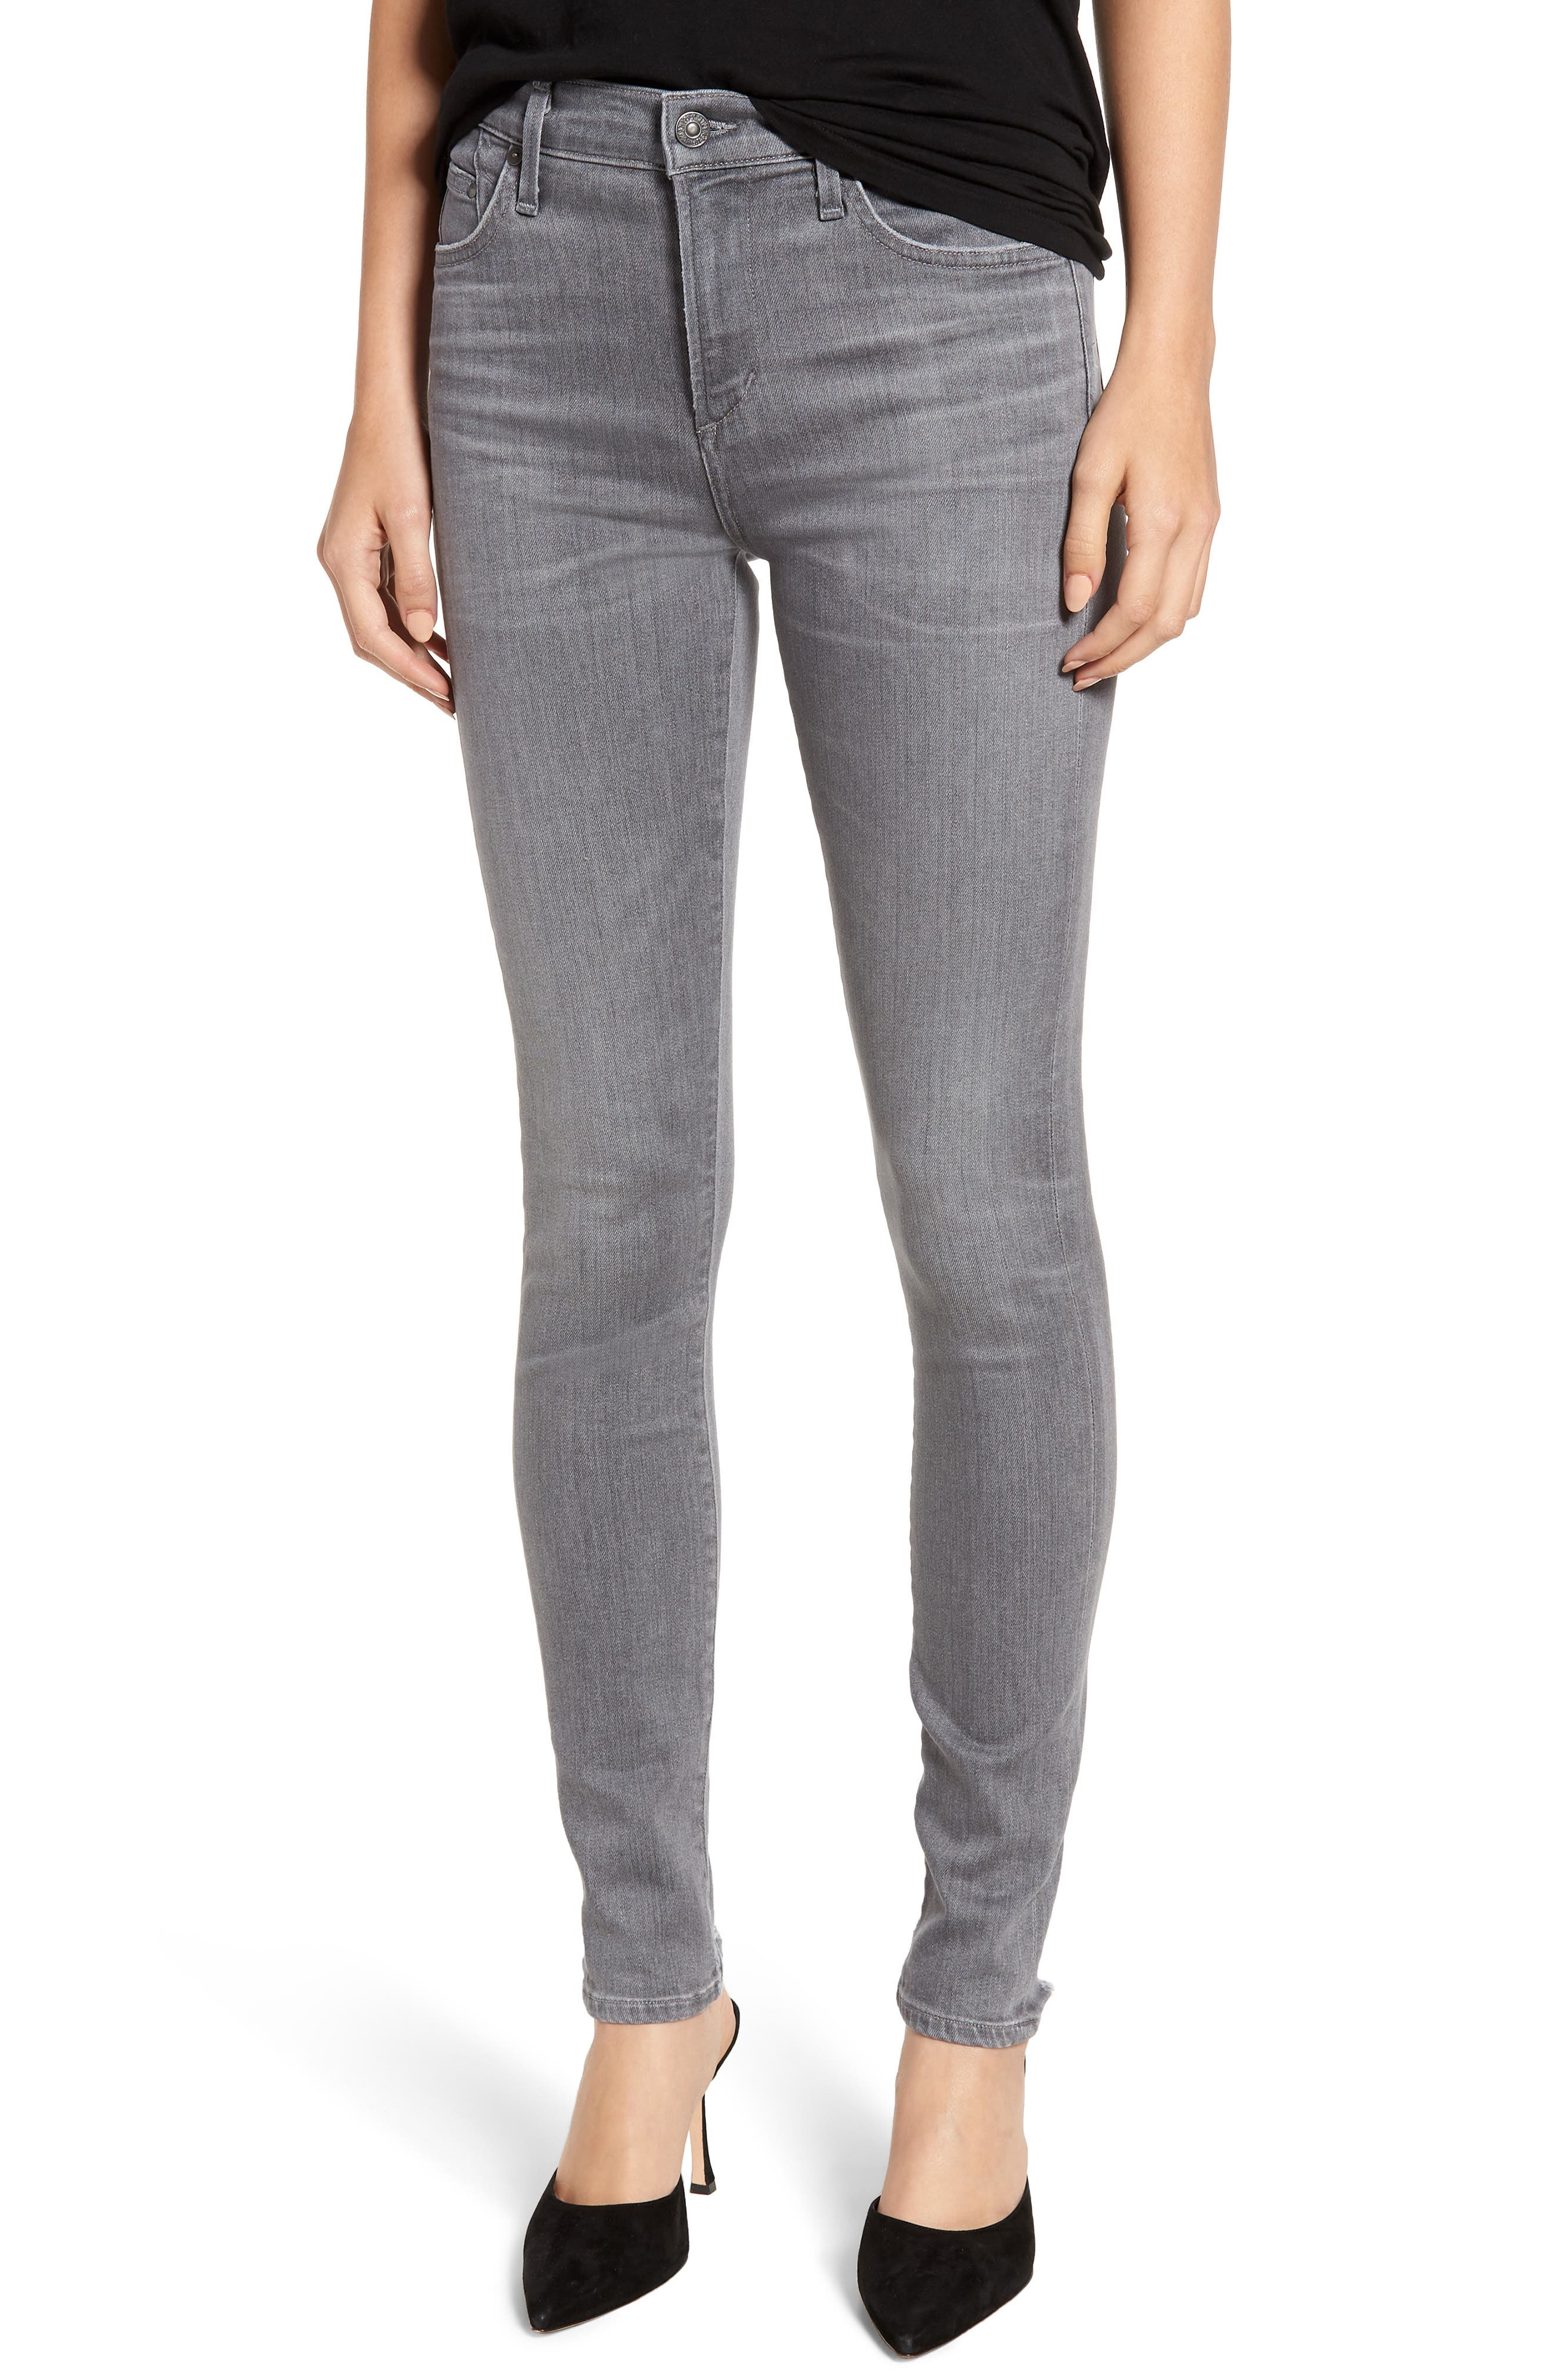 CITIZENS OF HUMANITY Rocket High Waist Skinny Jeans, Main, color, STATUETTE